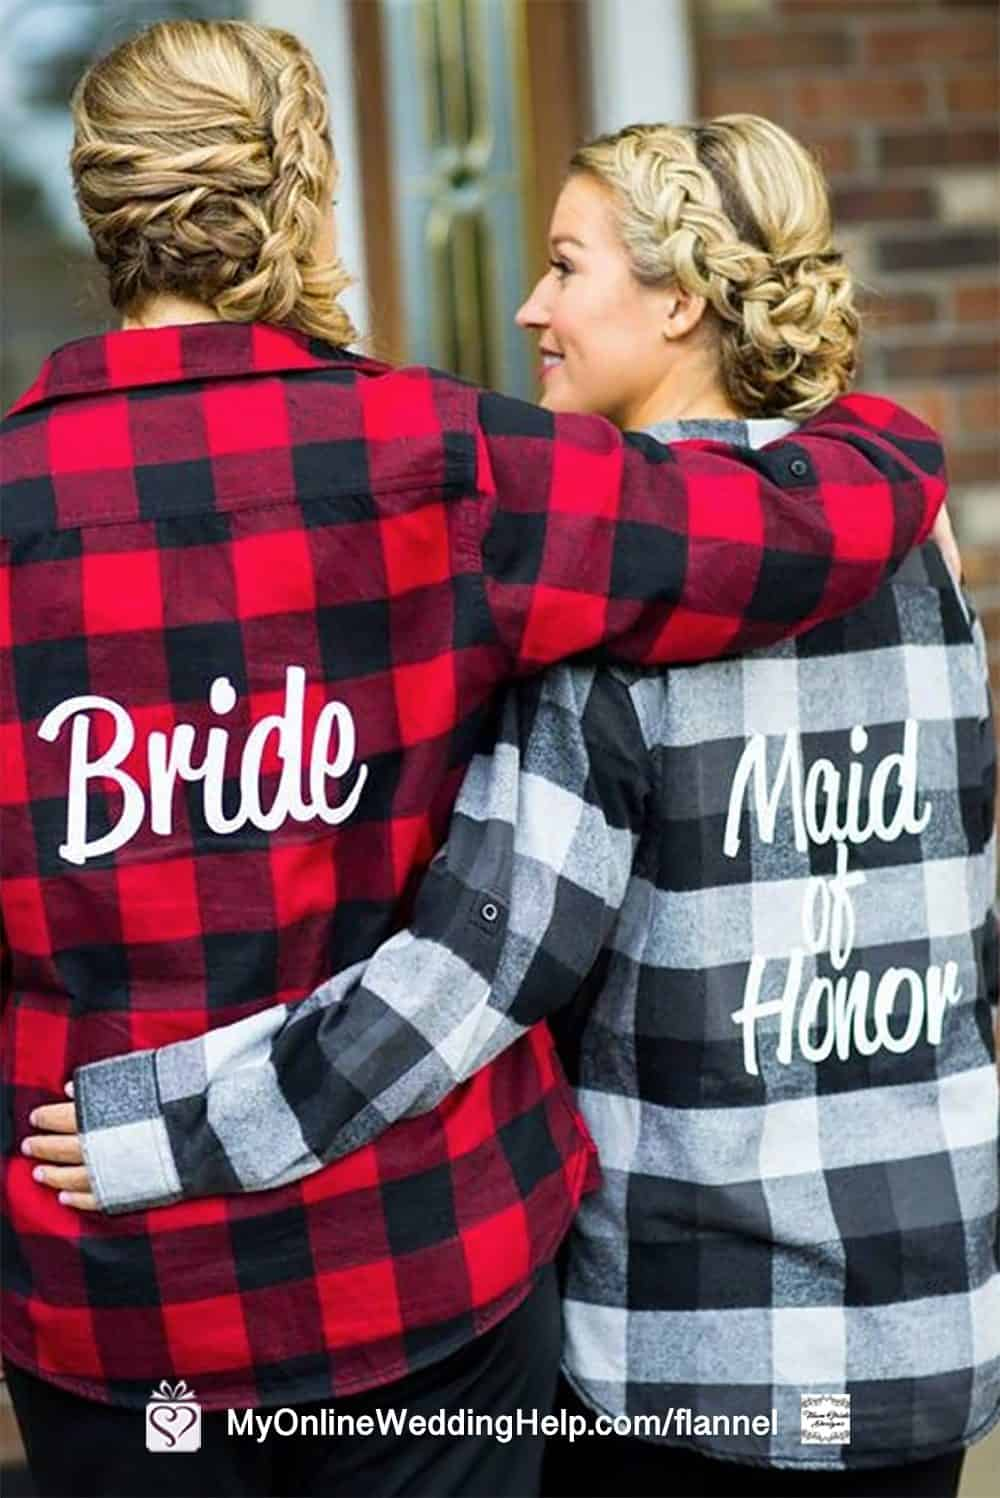 Rustic Bride and Maid of Honor Bridesmaids Shirts